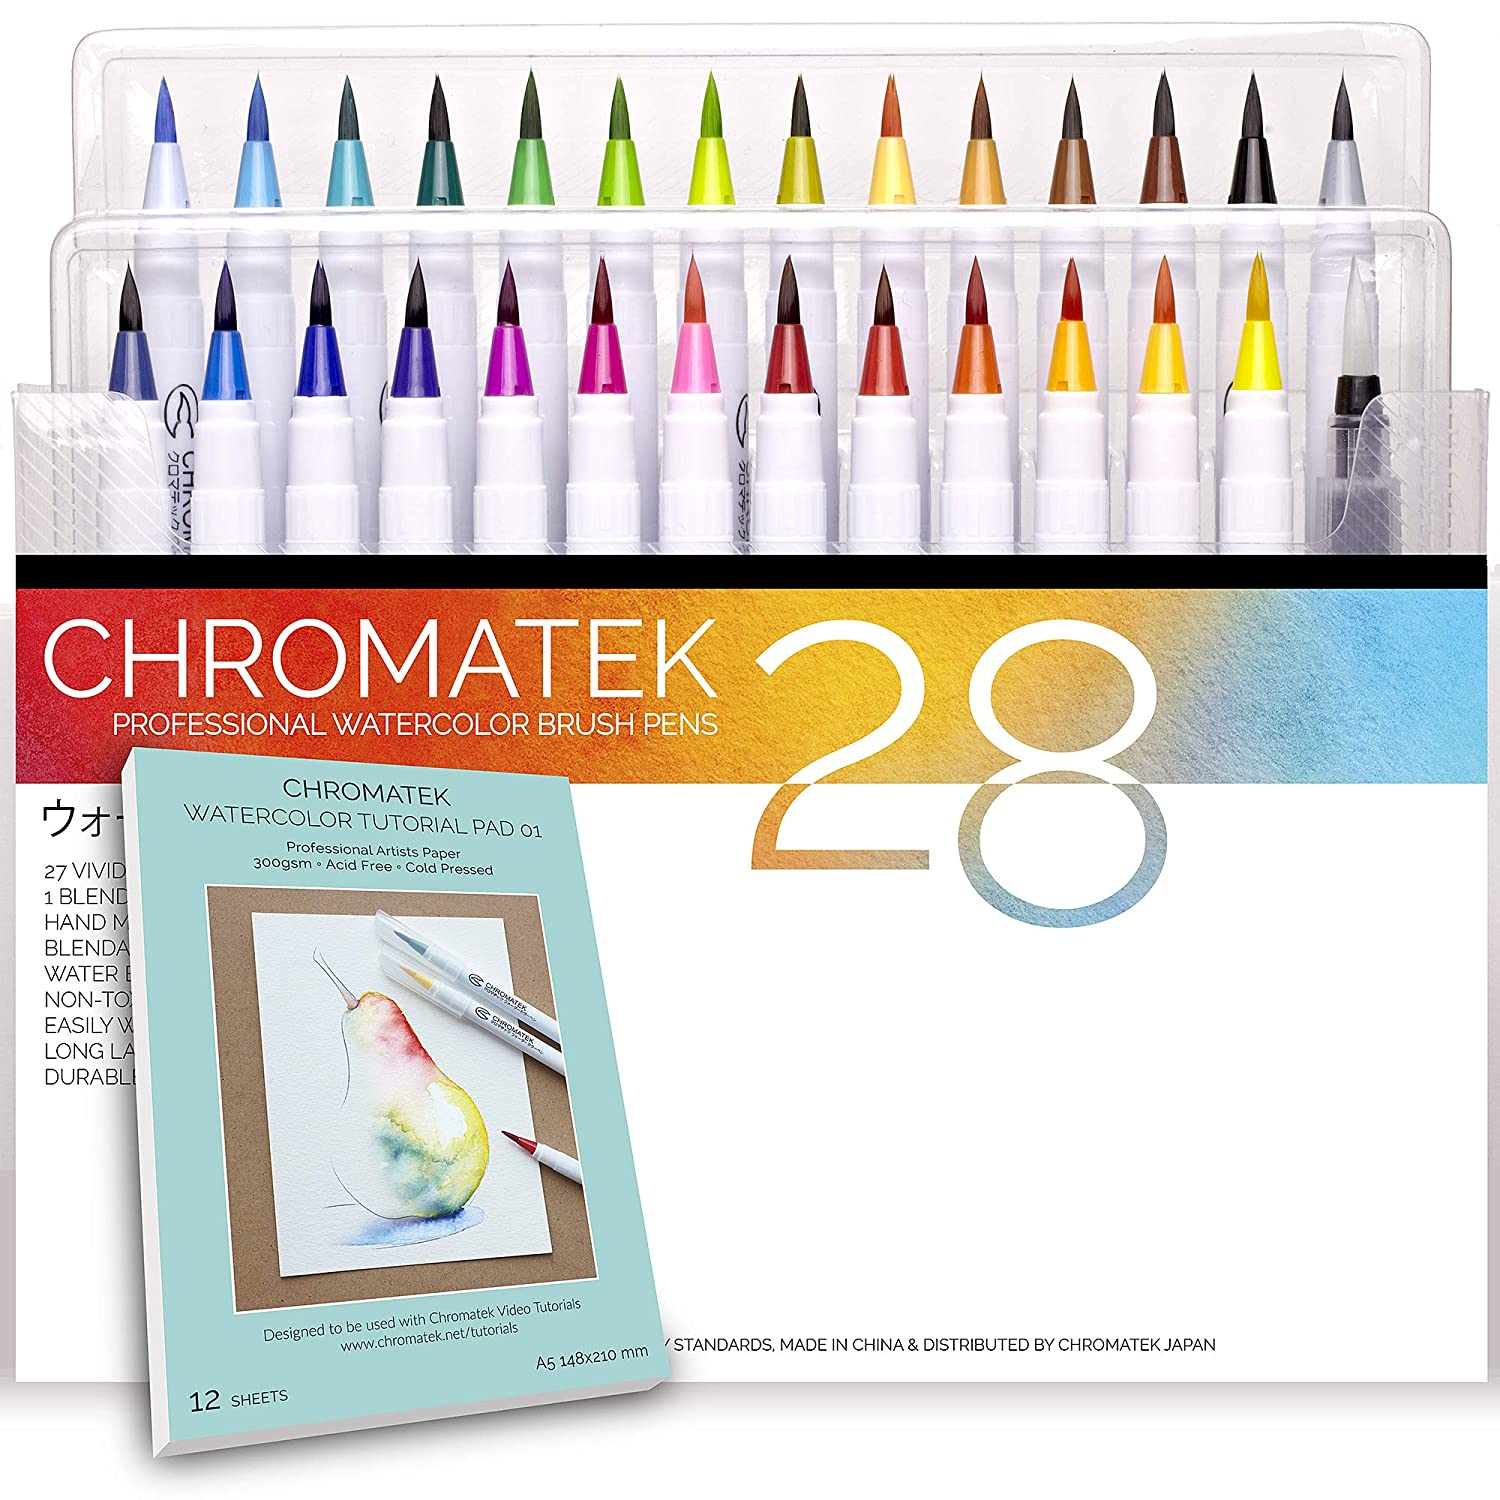 28 Watercolor Brush Pens, Tutorial Pad & Video Series by Chromatek. Real Brush Tip. Vivid. Smooth. Blendable. Long Lasting. Professional Artist Quality. 27 Colors 1 Blending Brush. …